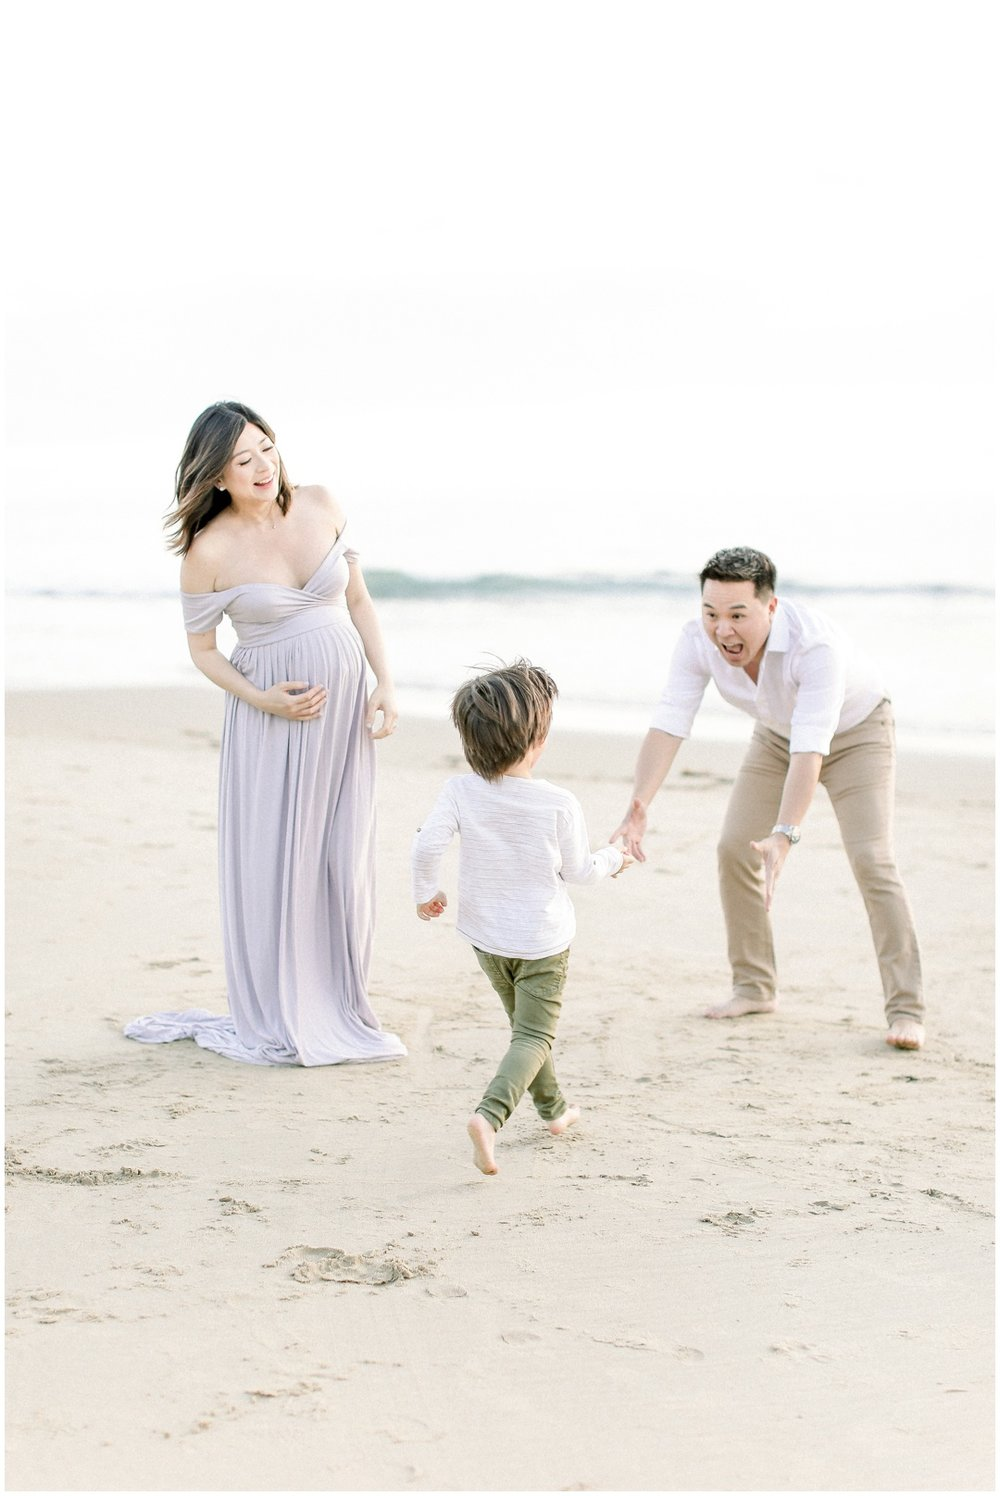 Newport_Beach_Newborn_Photographer_Newport_Beach_Maternity_Photographer_Orange_County_Family_Photographer_Cori_Kleckner_Photography_Huntington_Beach_Photographer_The_Perez_Family_OC_Maternity__2977.jpg